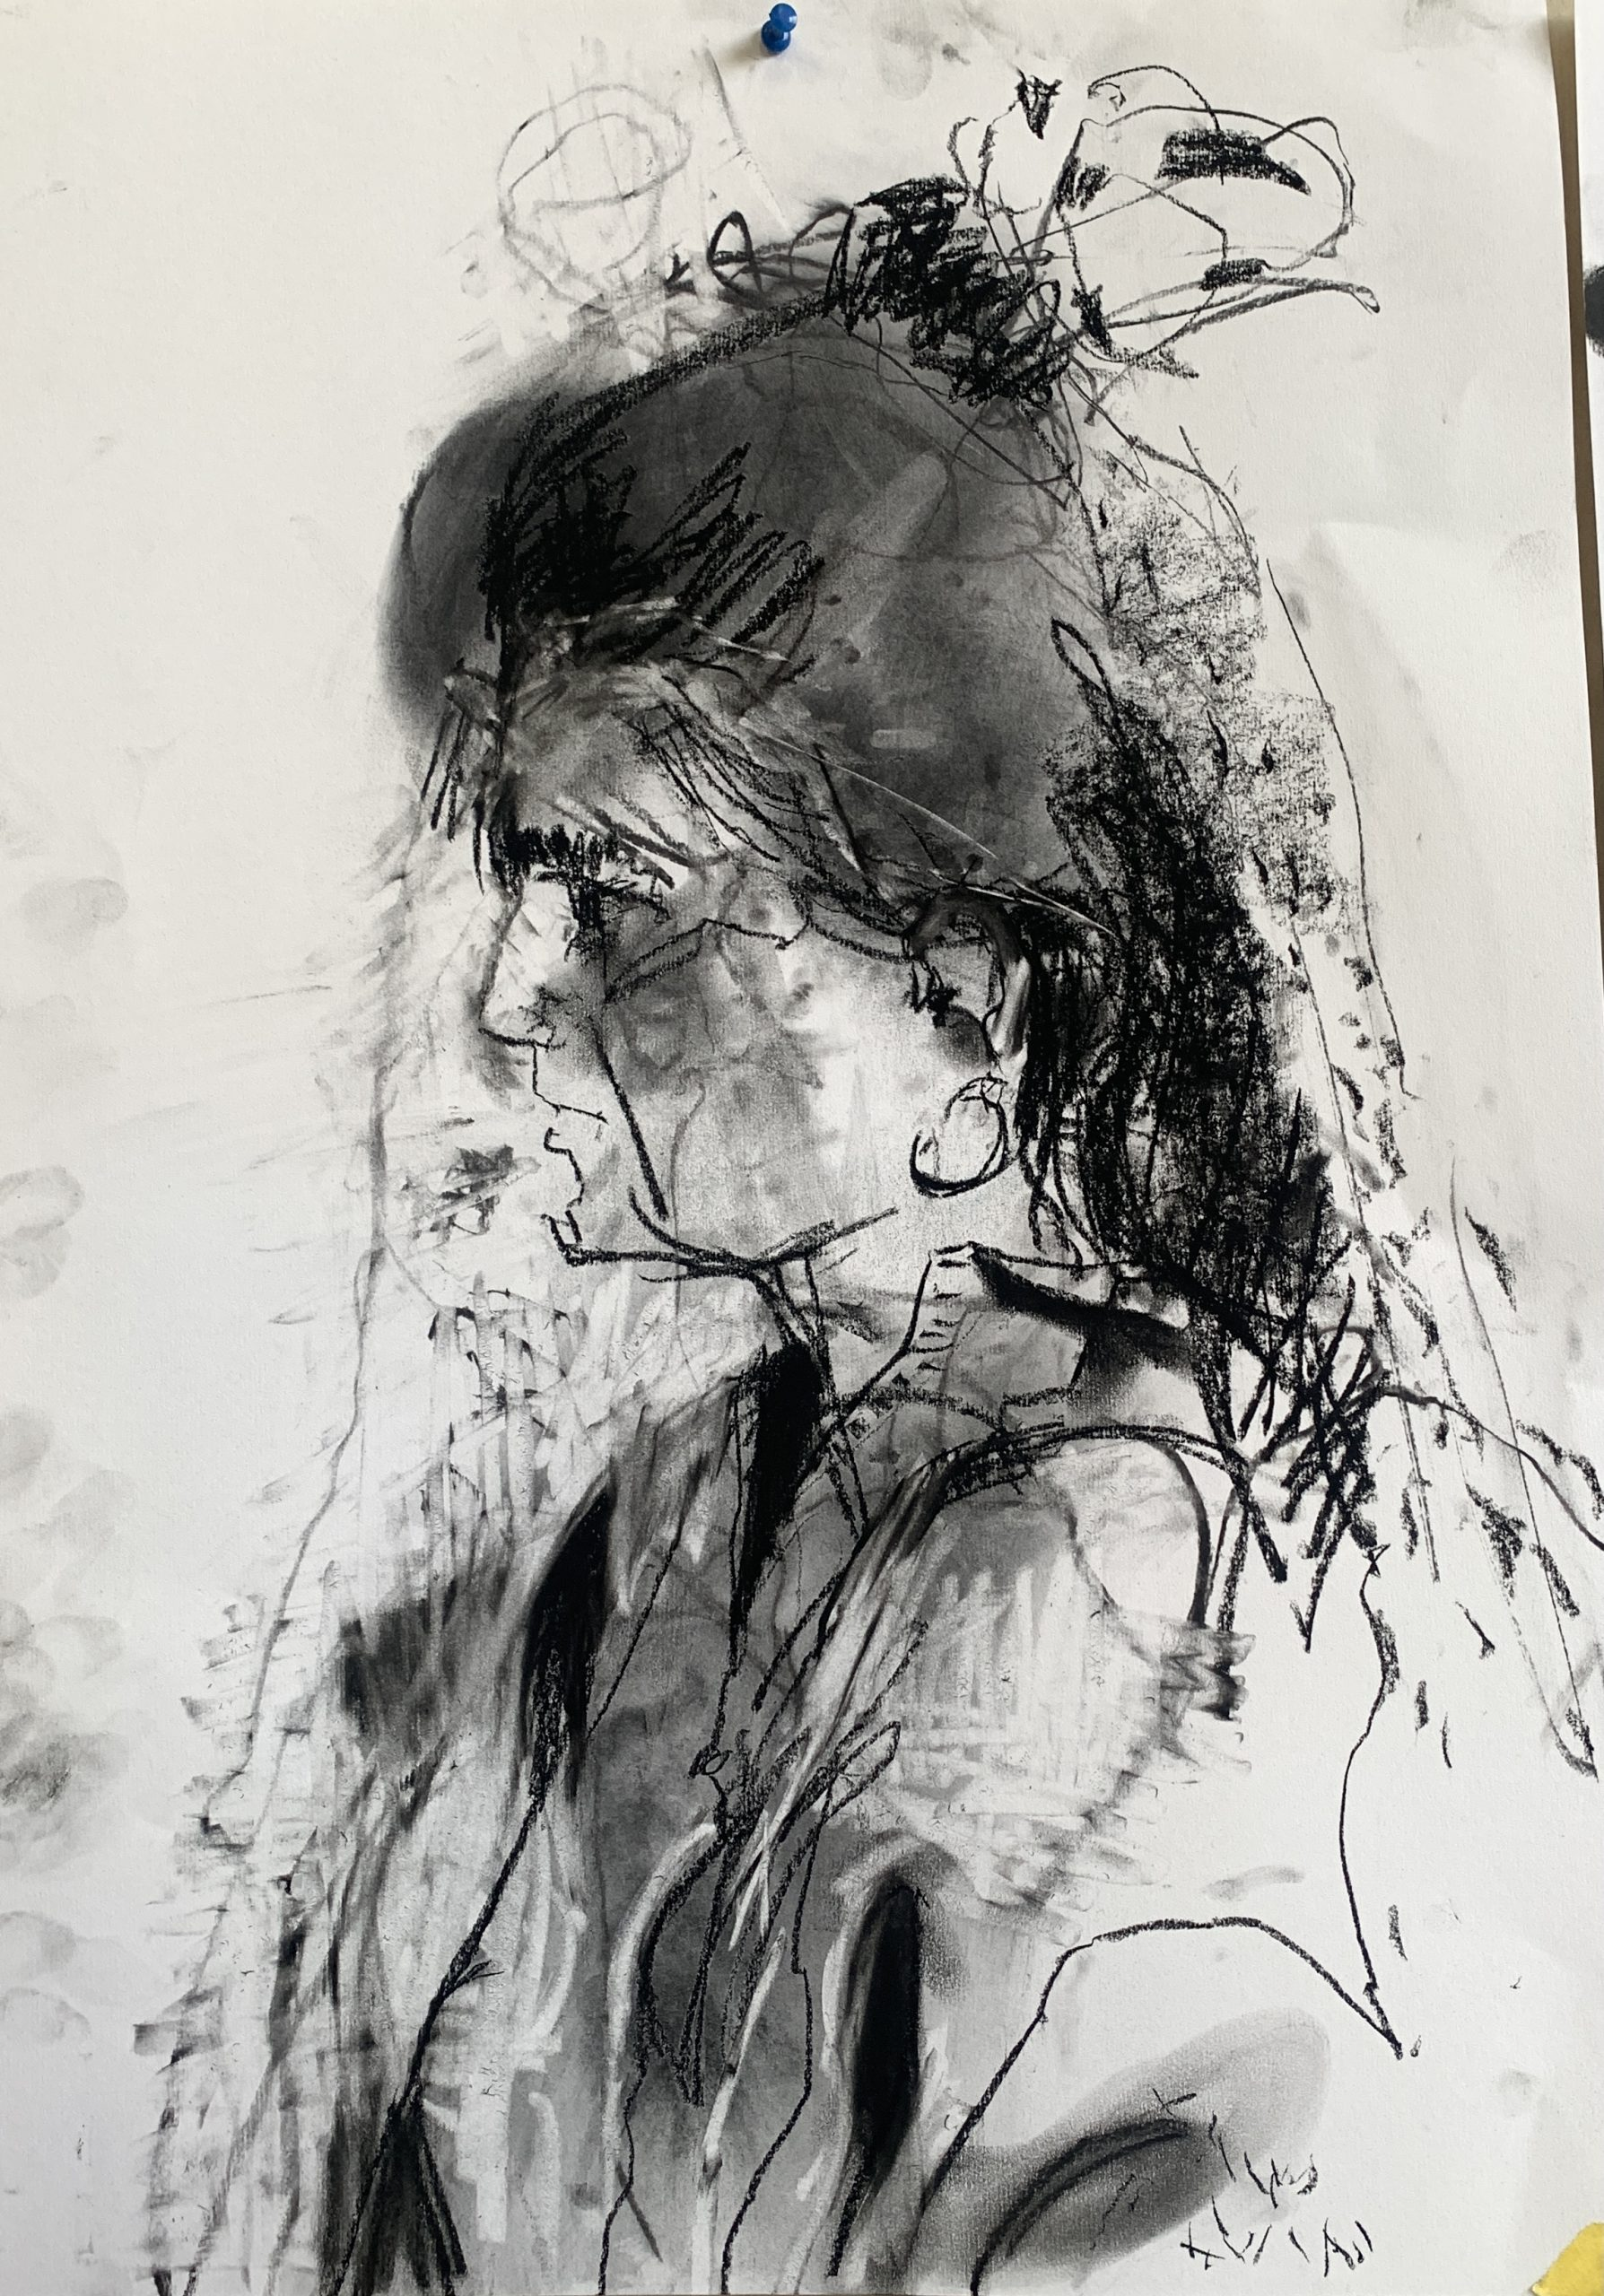 charcoal on A1 paper